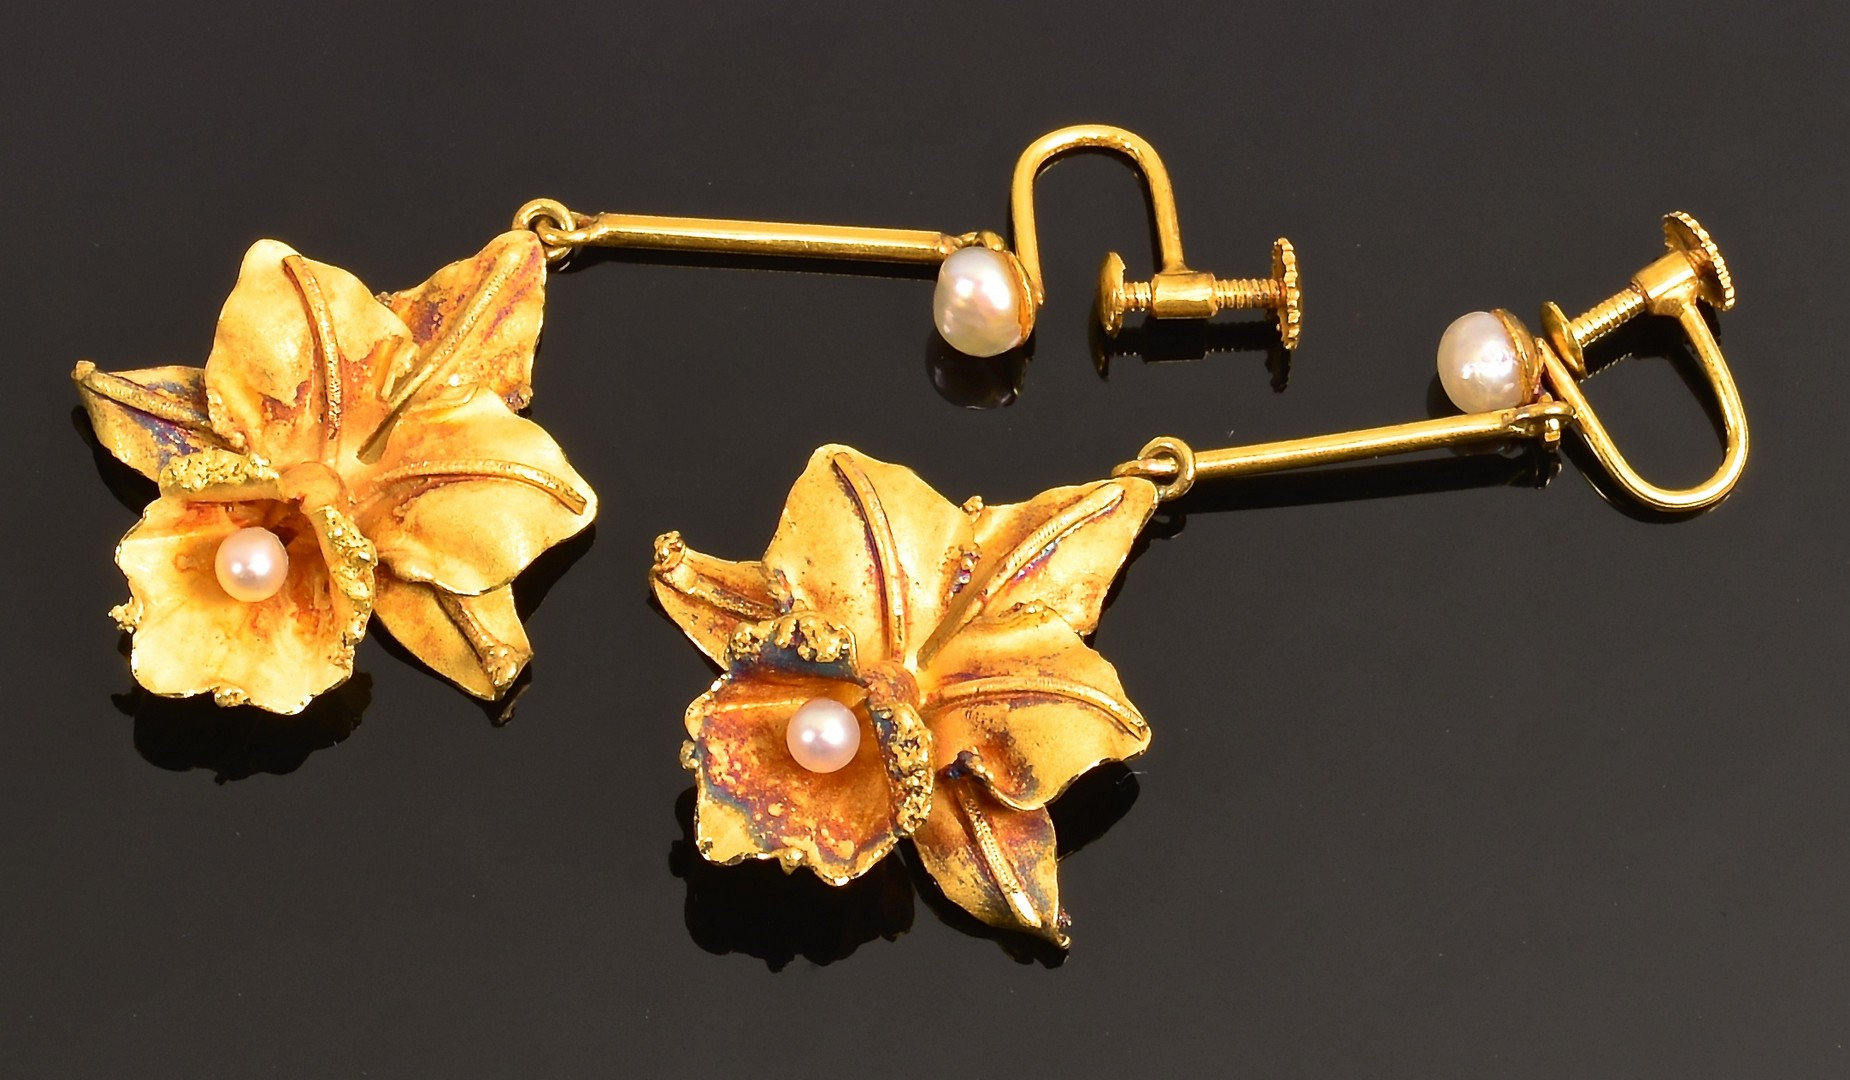 Lot 4010143: 18K Orchid Earrings and Pin